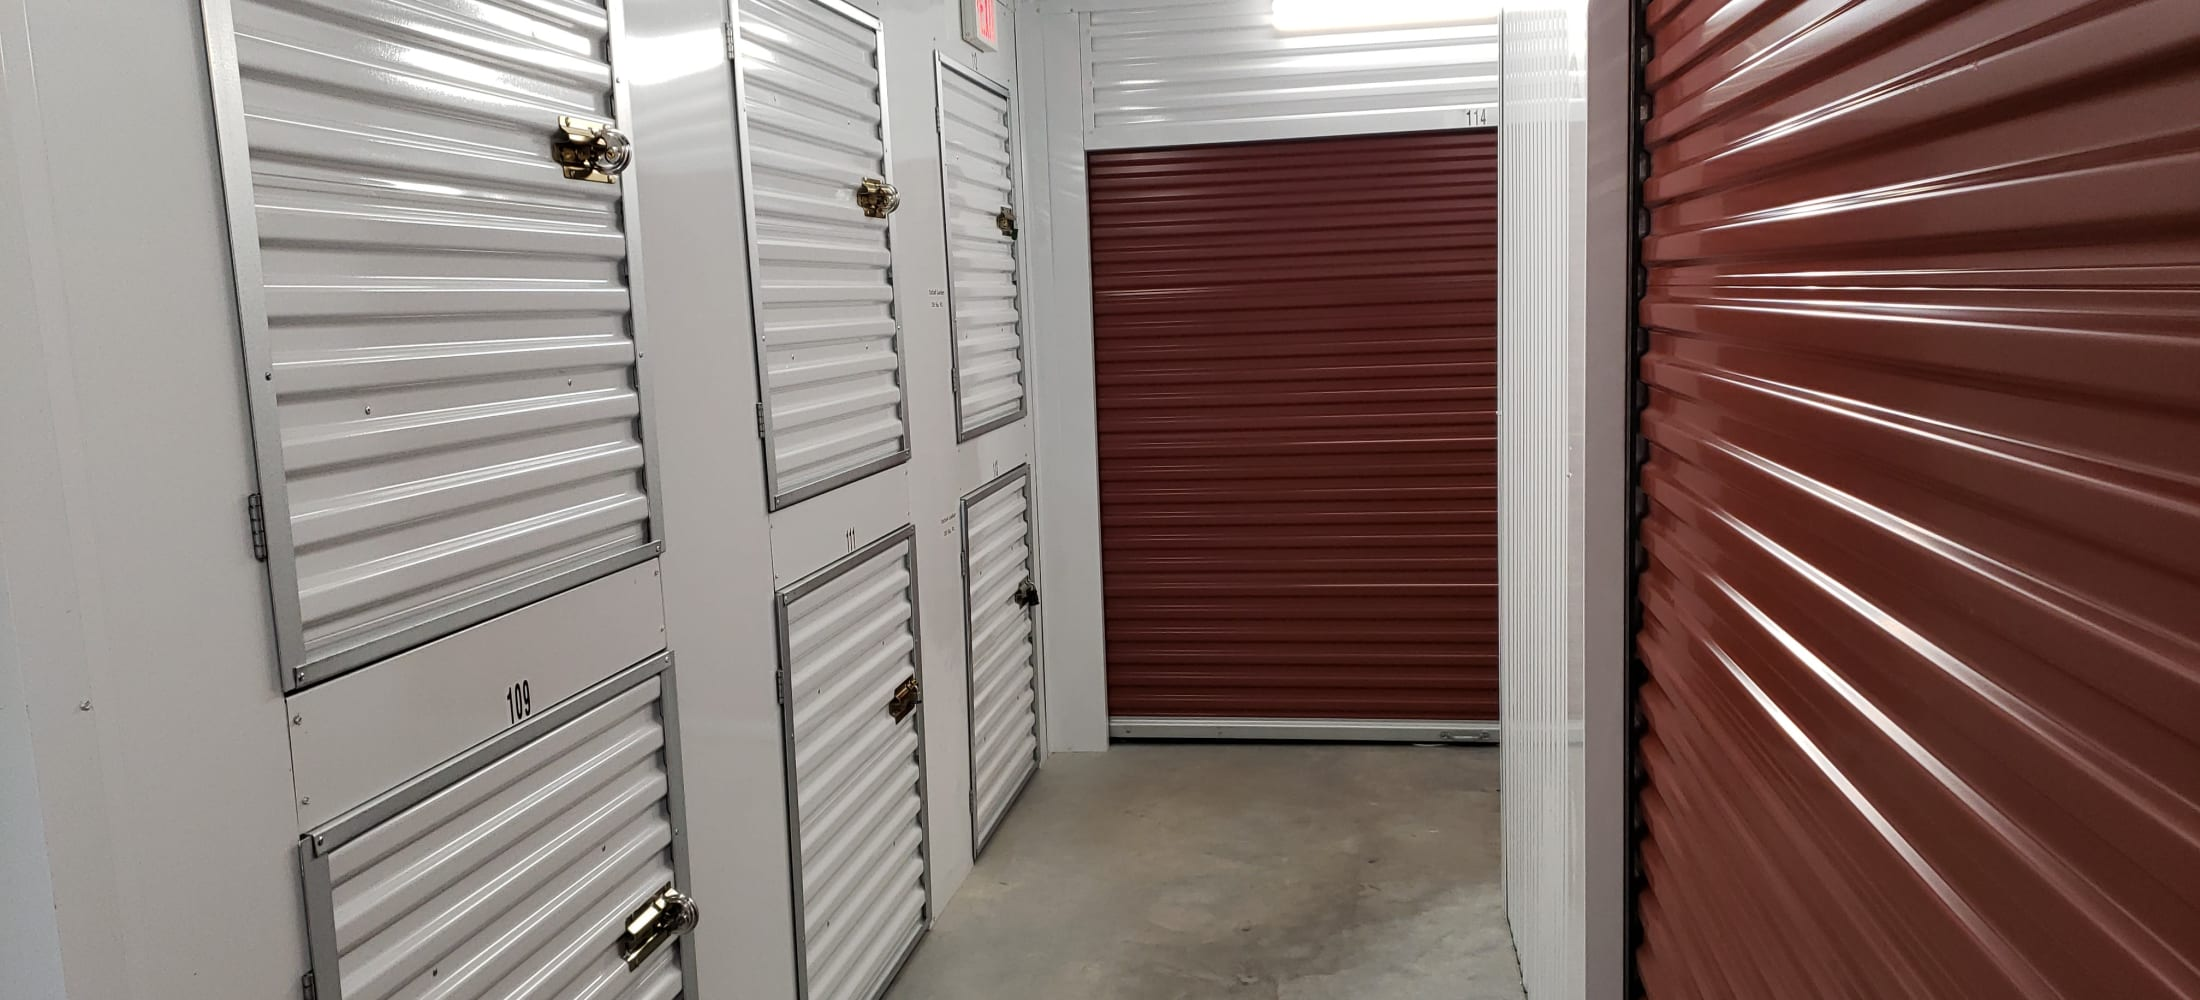 Indoor storage units at Storage Authority Walters Rd in Houston, TX